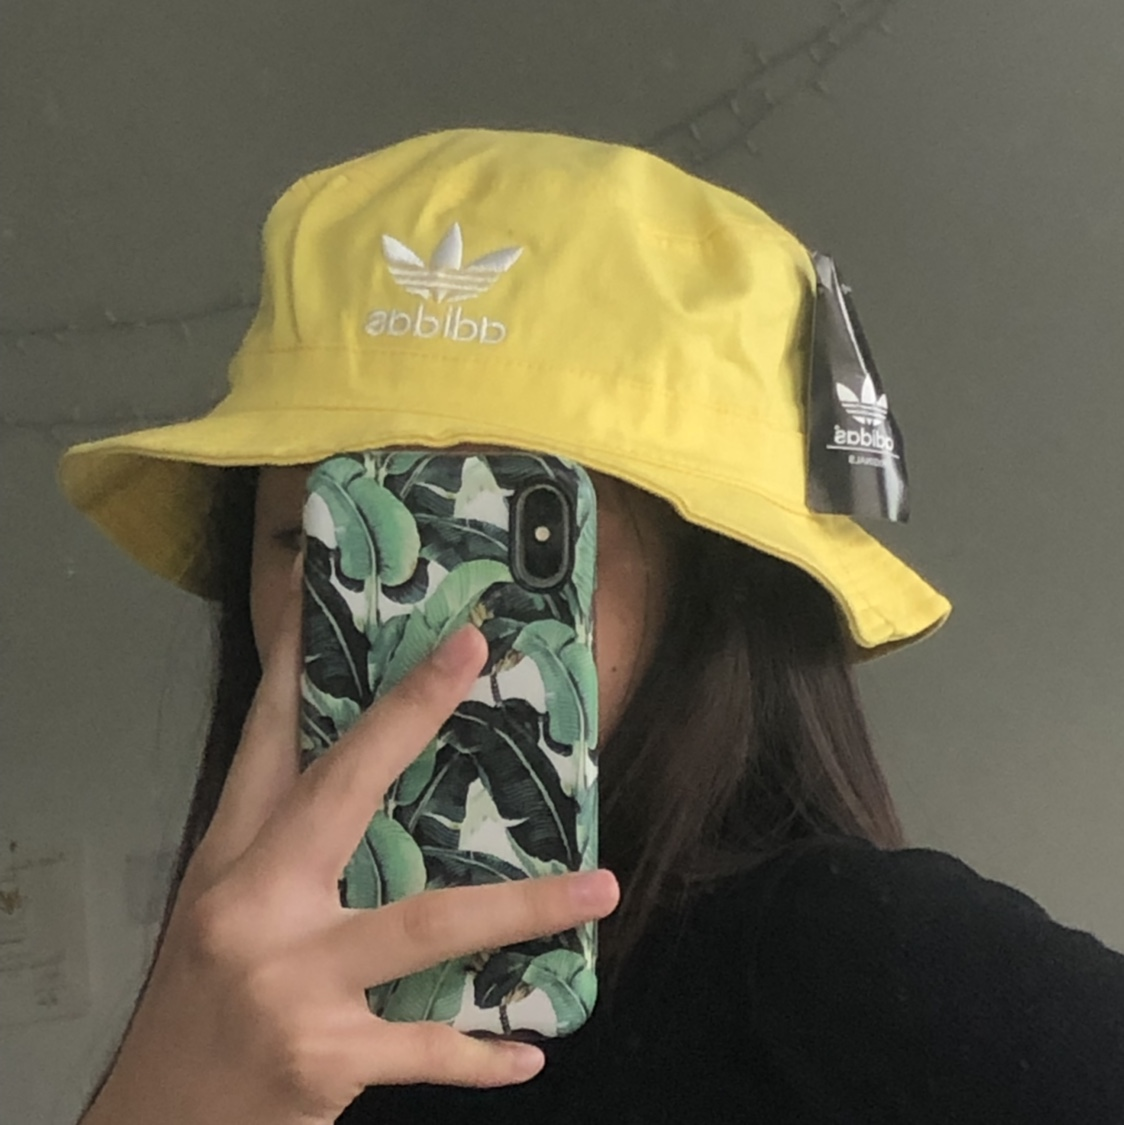 New Yellow Adidas Bucket Hat Super Cute And Depop